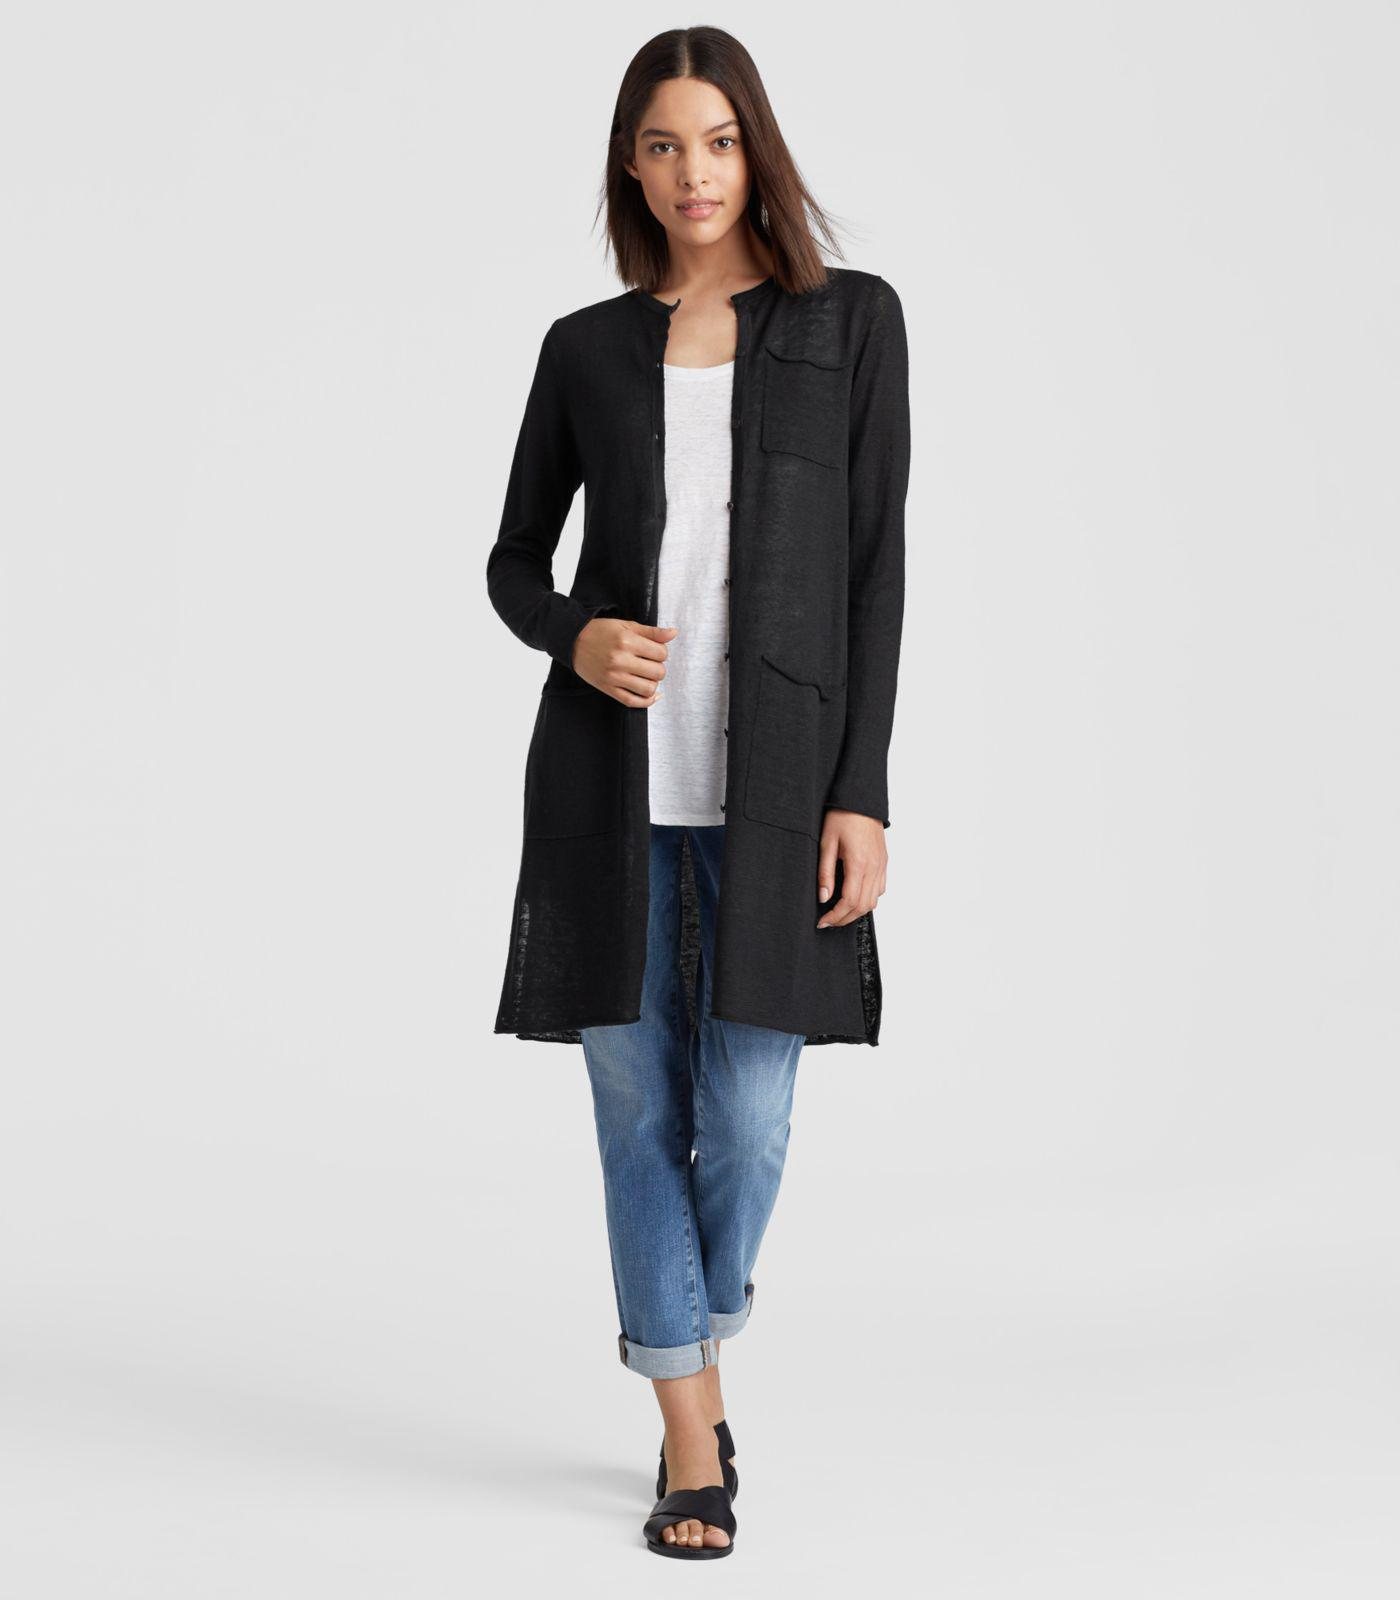 8fad988a5ad Lyst - Eileen Fisher Organic Linen Knit Long Cardigan in Black